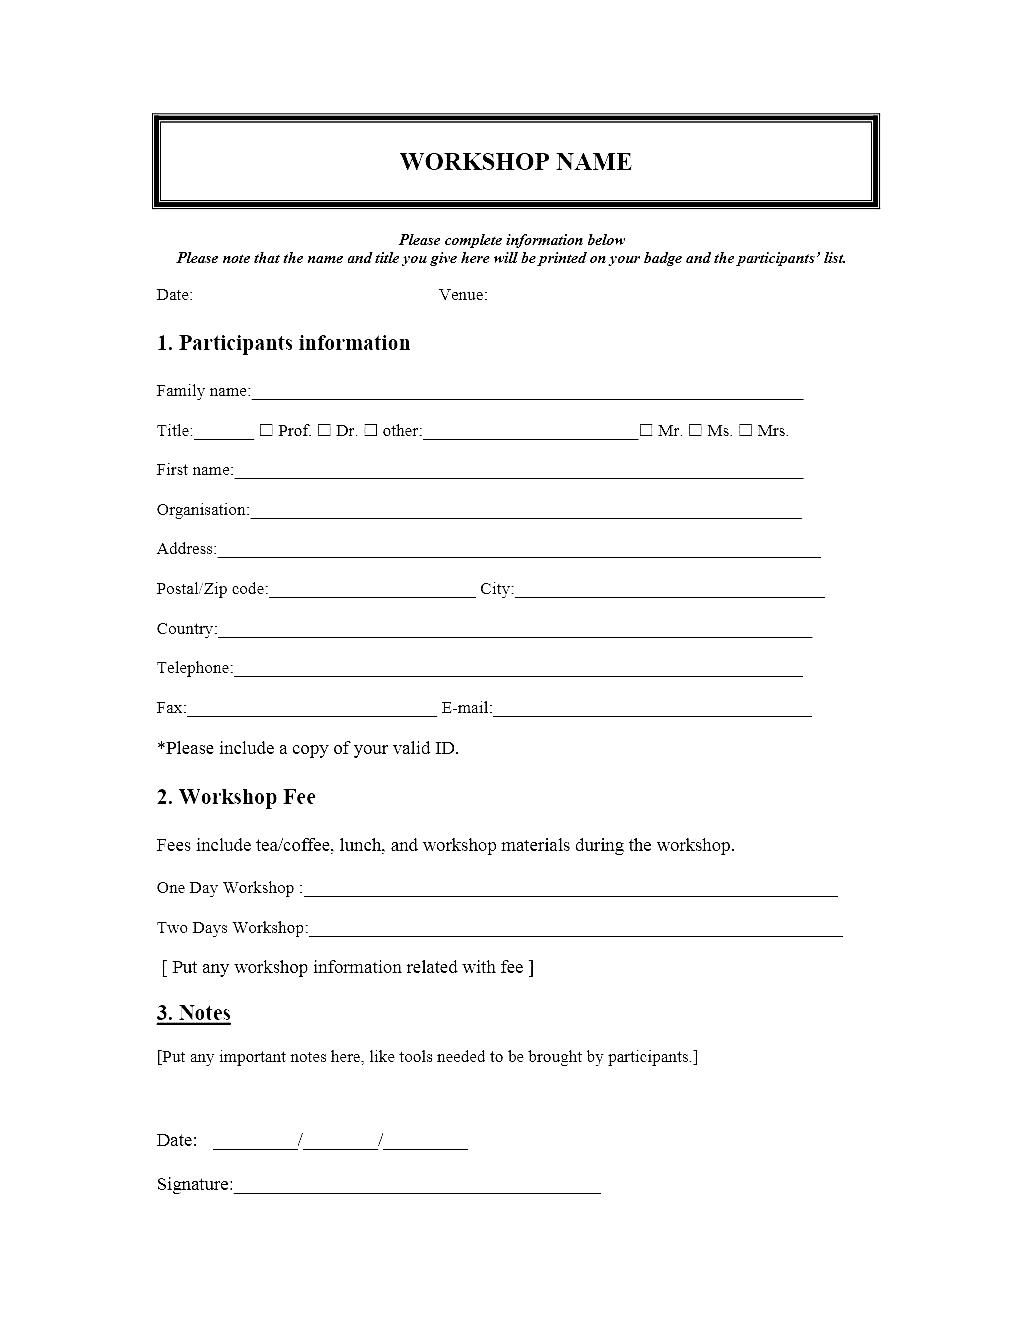 Event Registration Form Template Word Pleasing Event Registration Form Template Microsoft Word  Besttemplate123 .